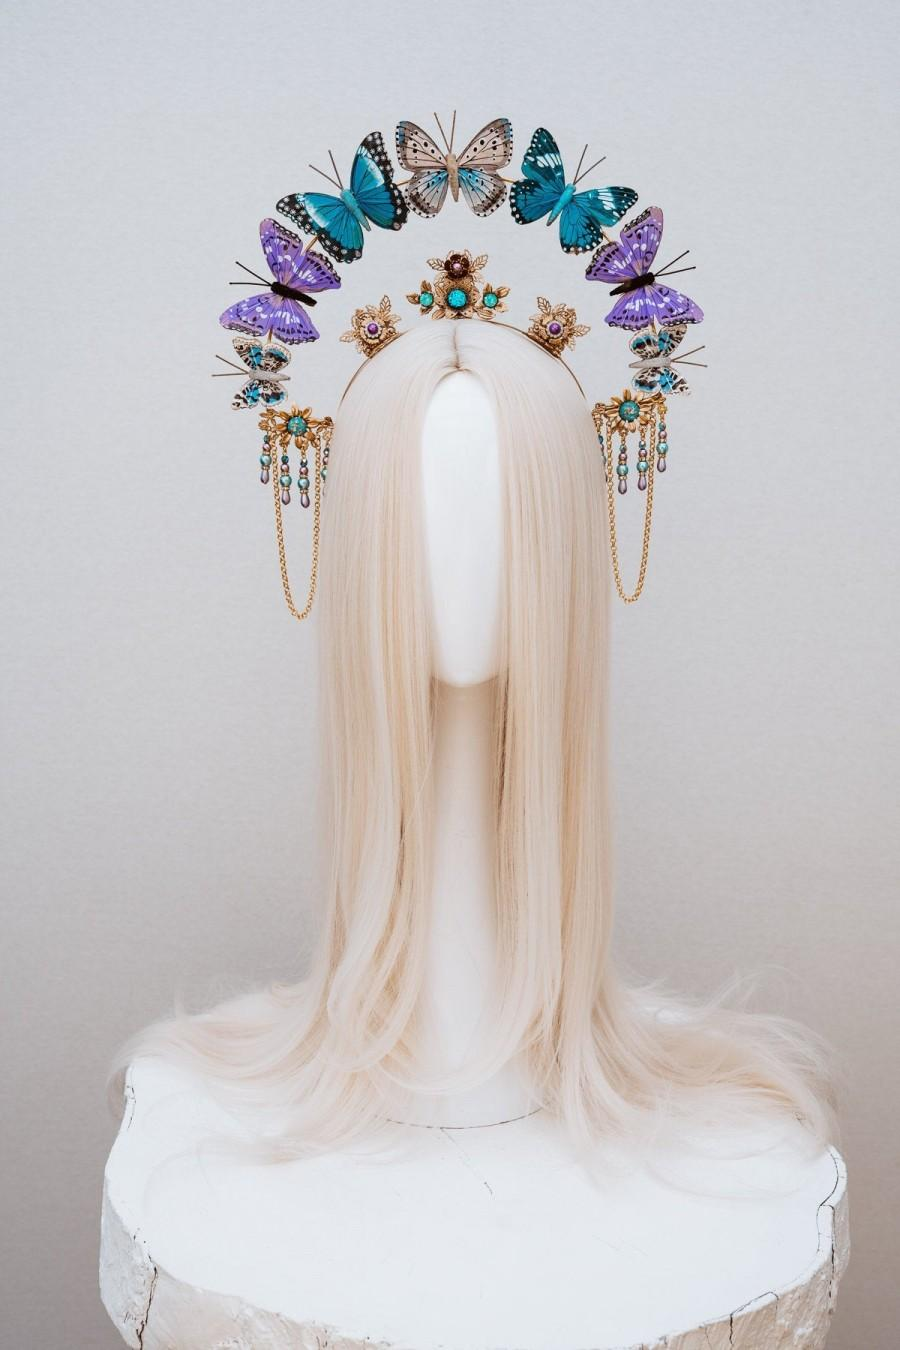 Mariage - Butterfly crown, Gold Halo Crown, Halo, Halo Crown, Halo Headpiece, Halo Headband, Halo Headlights, Crown, Gold Halo, Headpiece, Crown, Boho